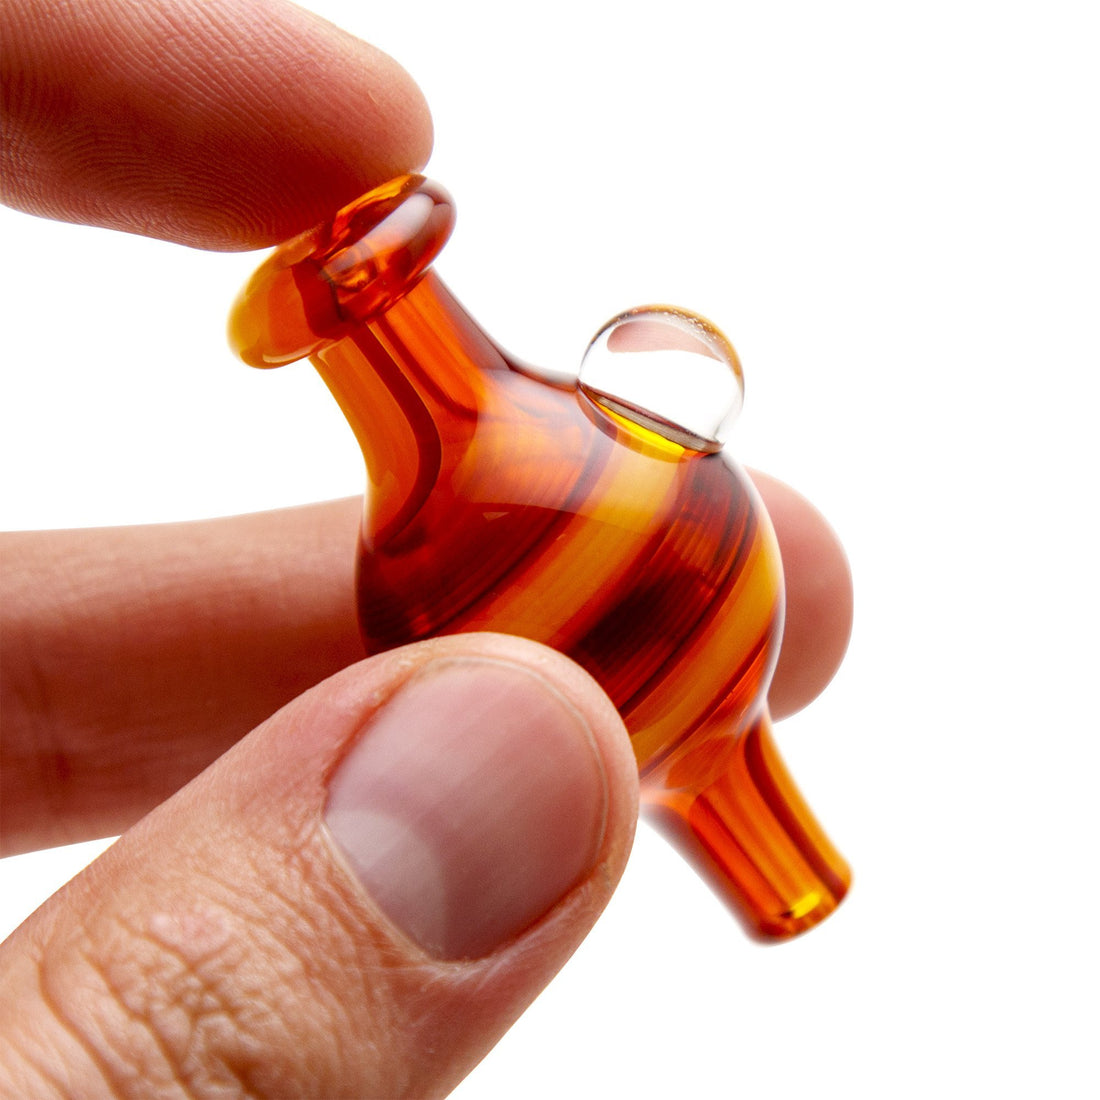 Home Blown Glass Bubble Carb Cap - Fire Swirl - 420 Science - The most trusted online smoke shop.